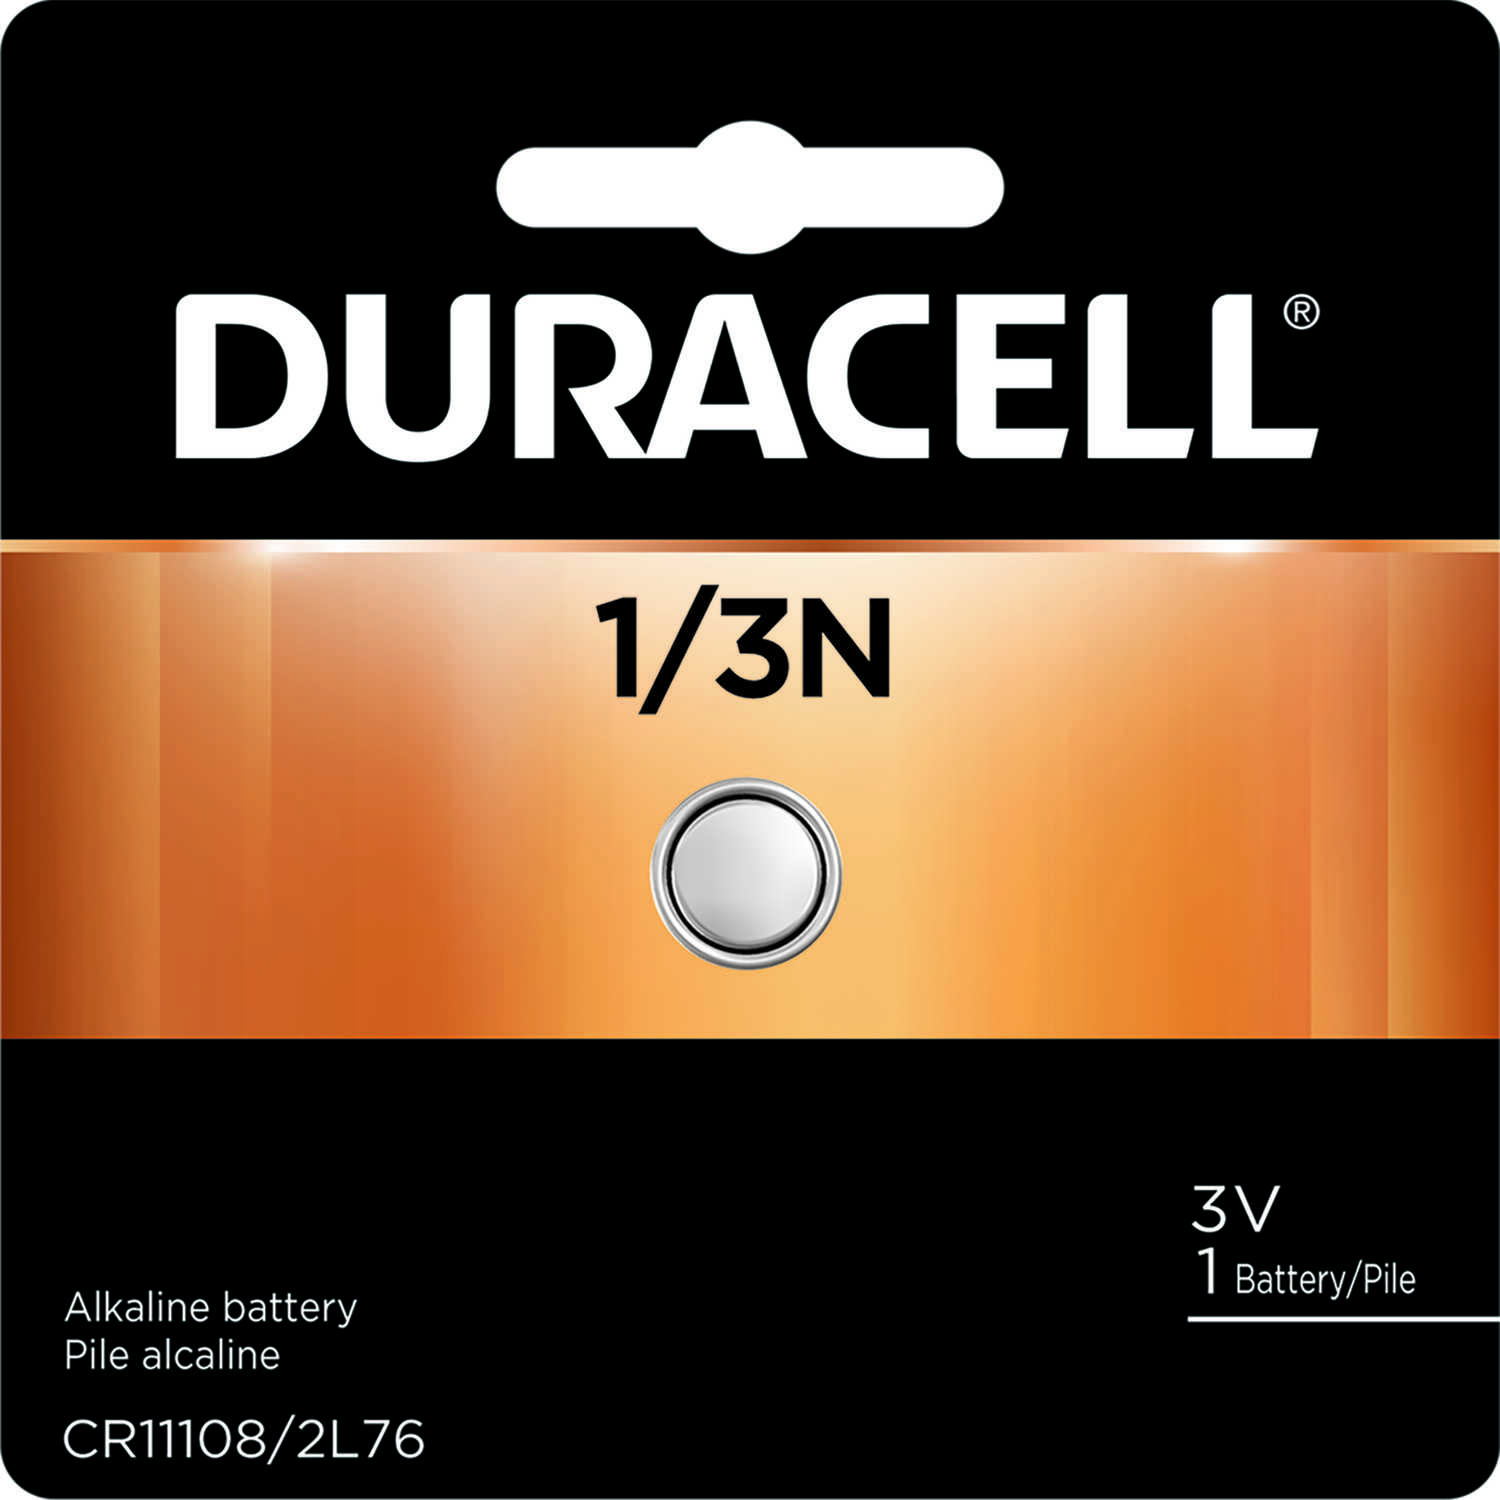 Duracell  1/3N  3 volt Camera Battery  1 pk Lithium